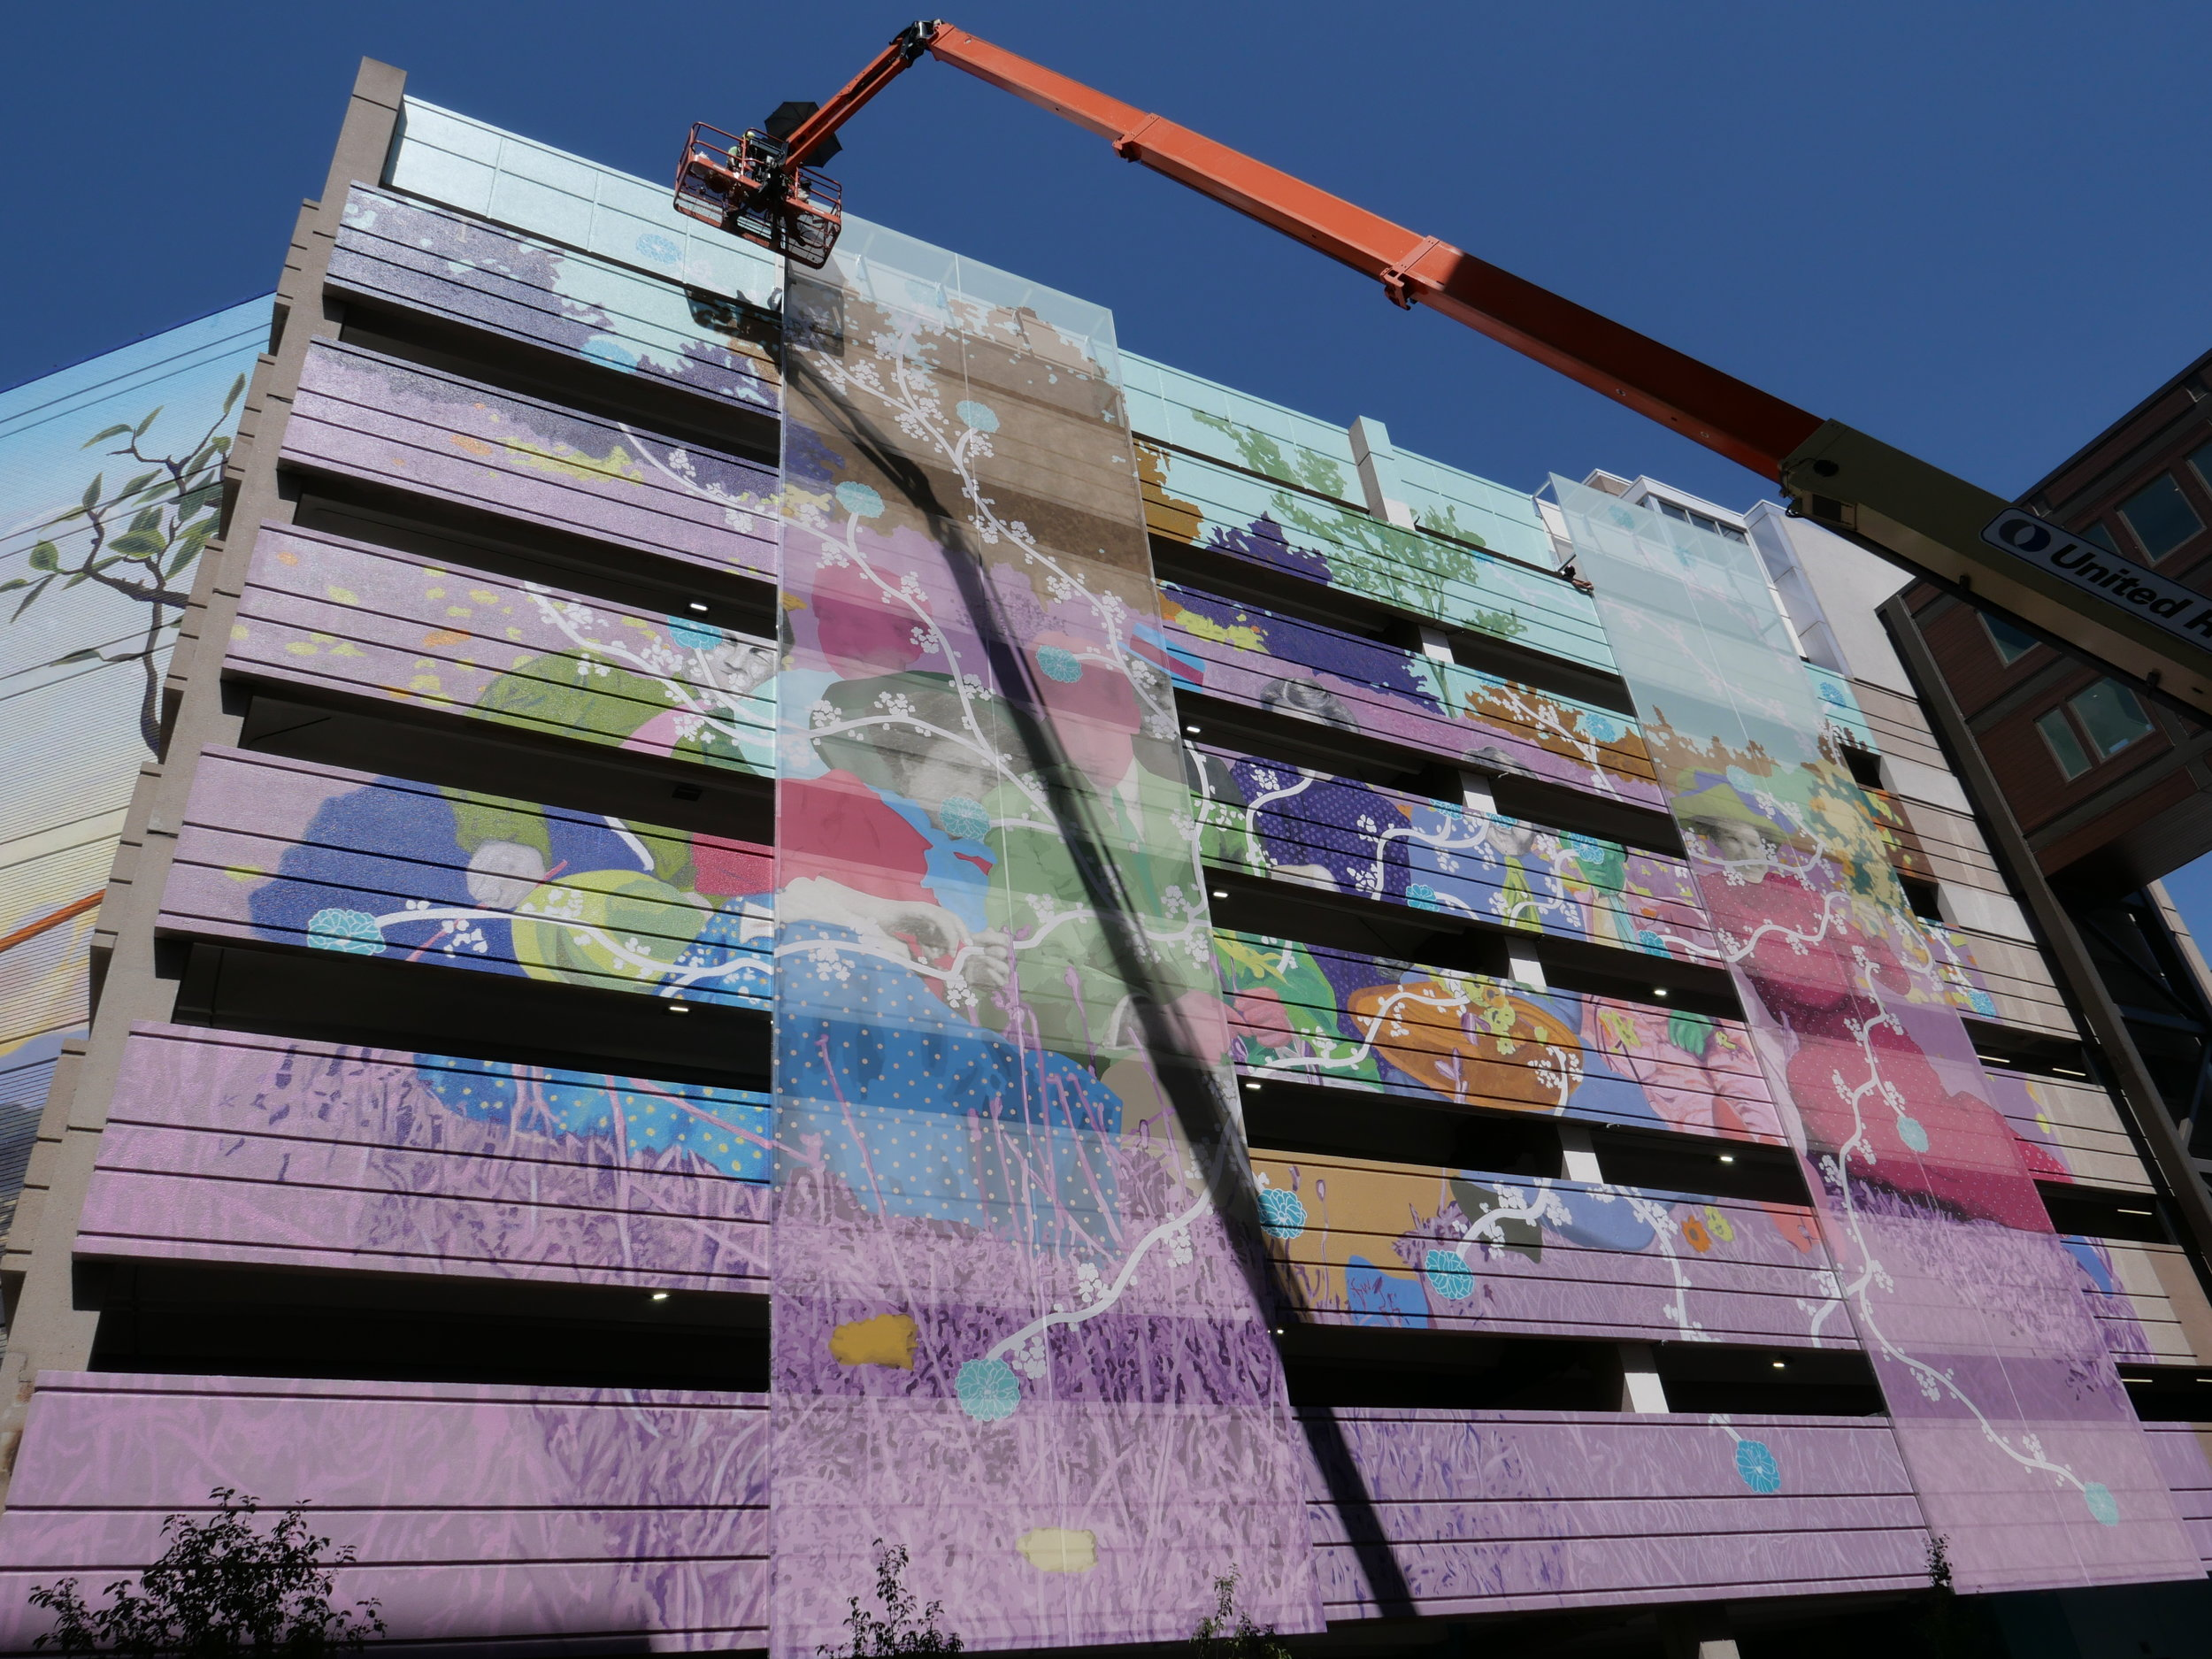 9th and Colorado_daisy patton_public art services_j grant projects_12.JPG